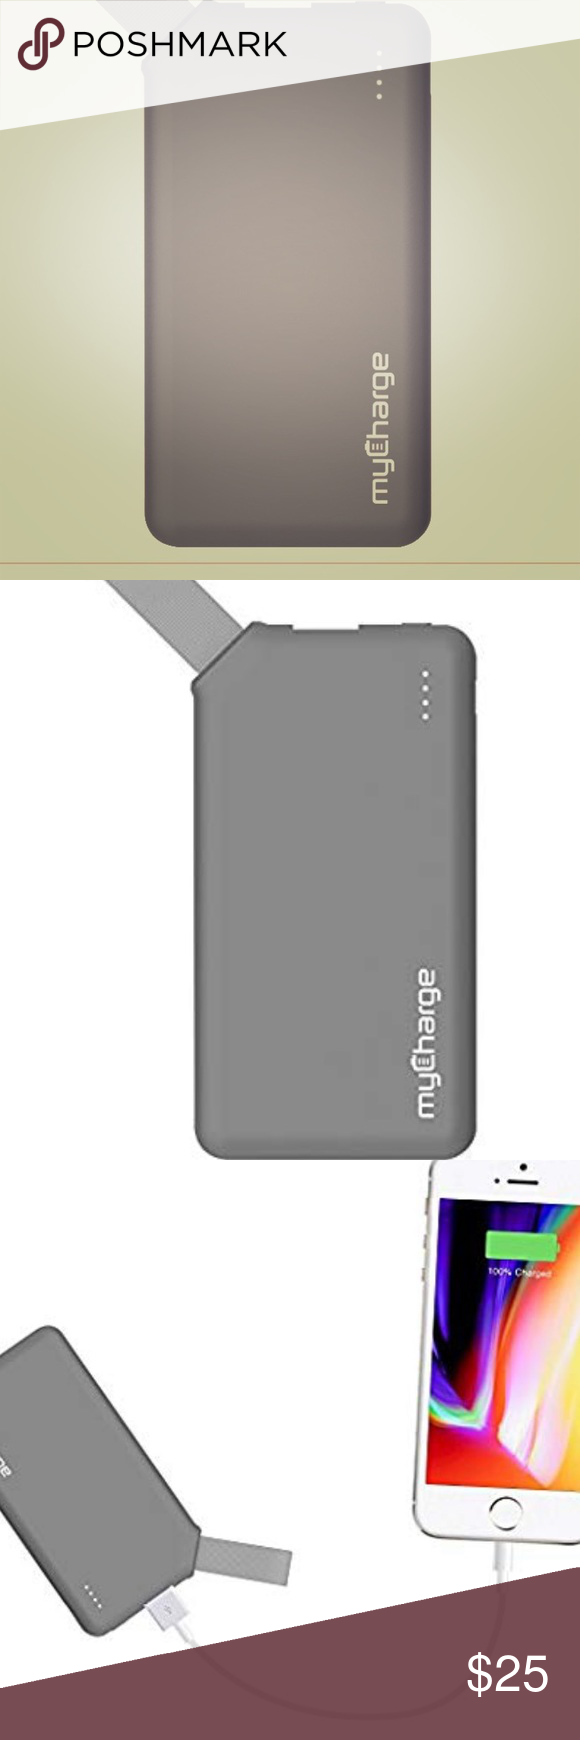 Mycharge Goxtra Portable Charger Portable Charger External Battery Pack Charger